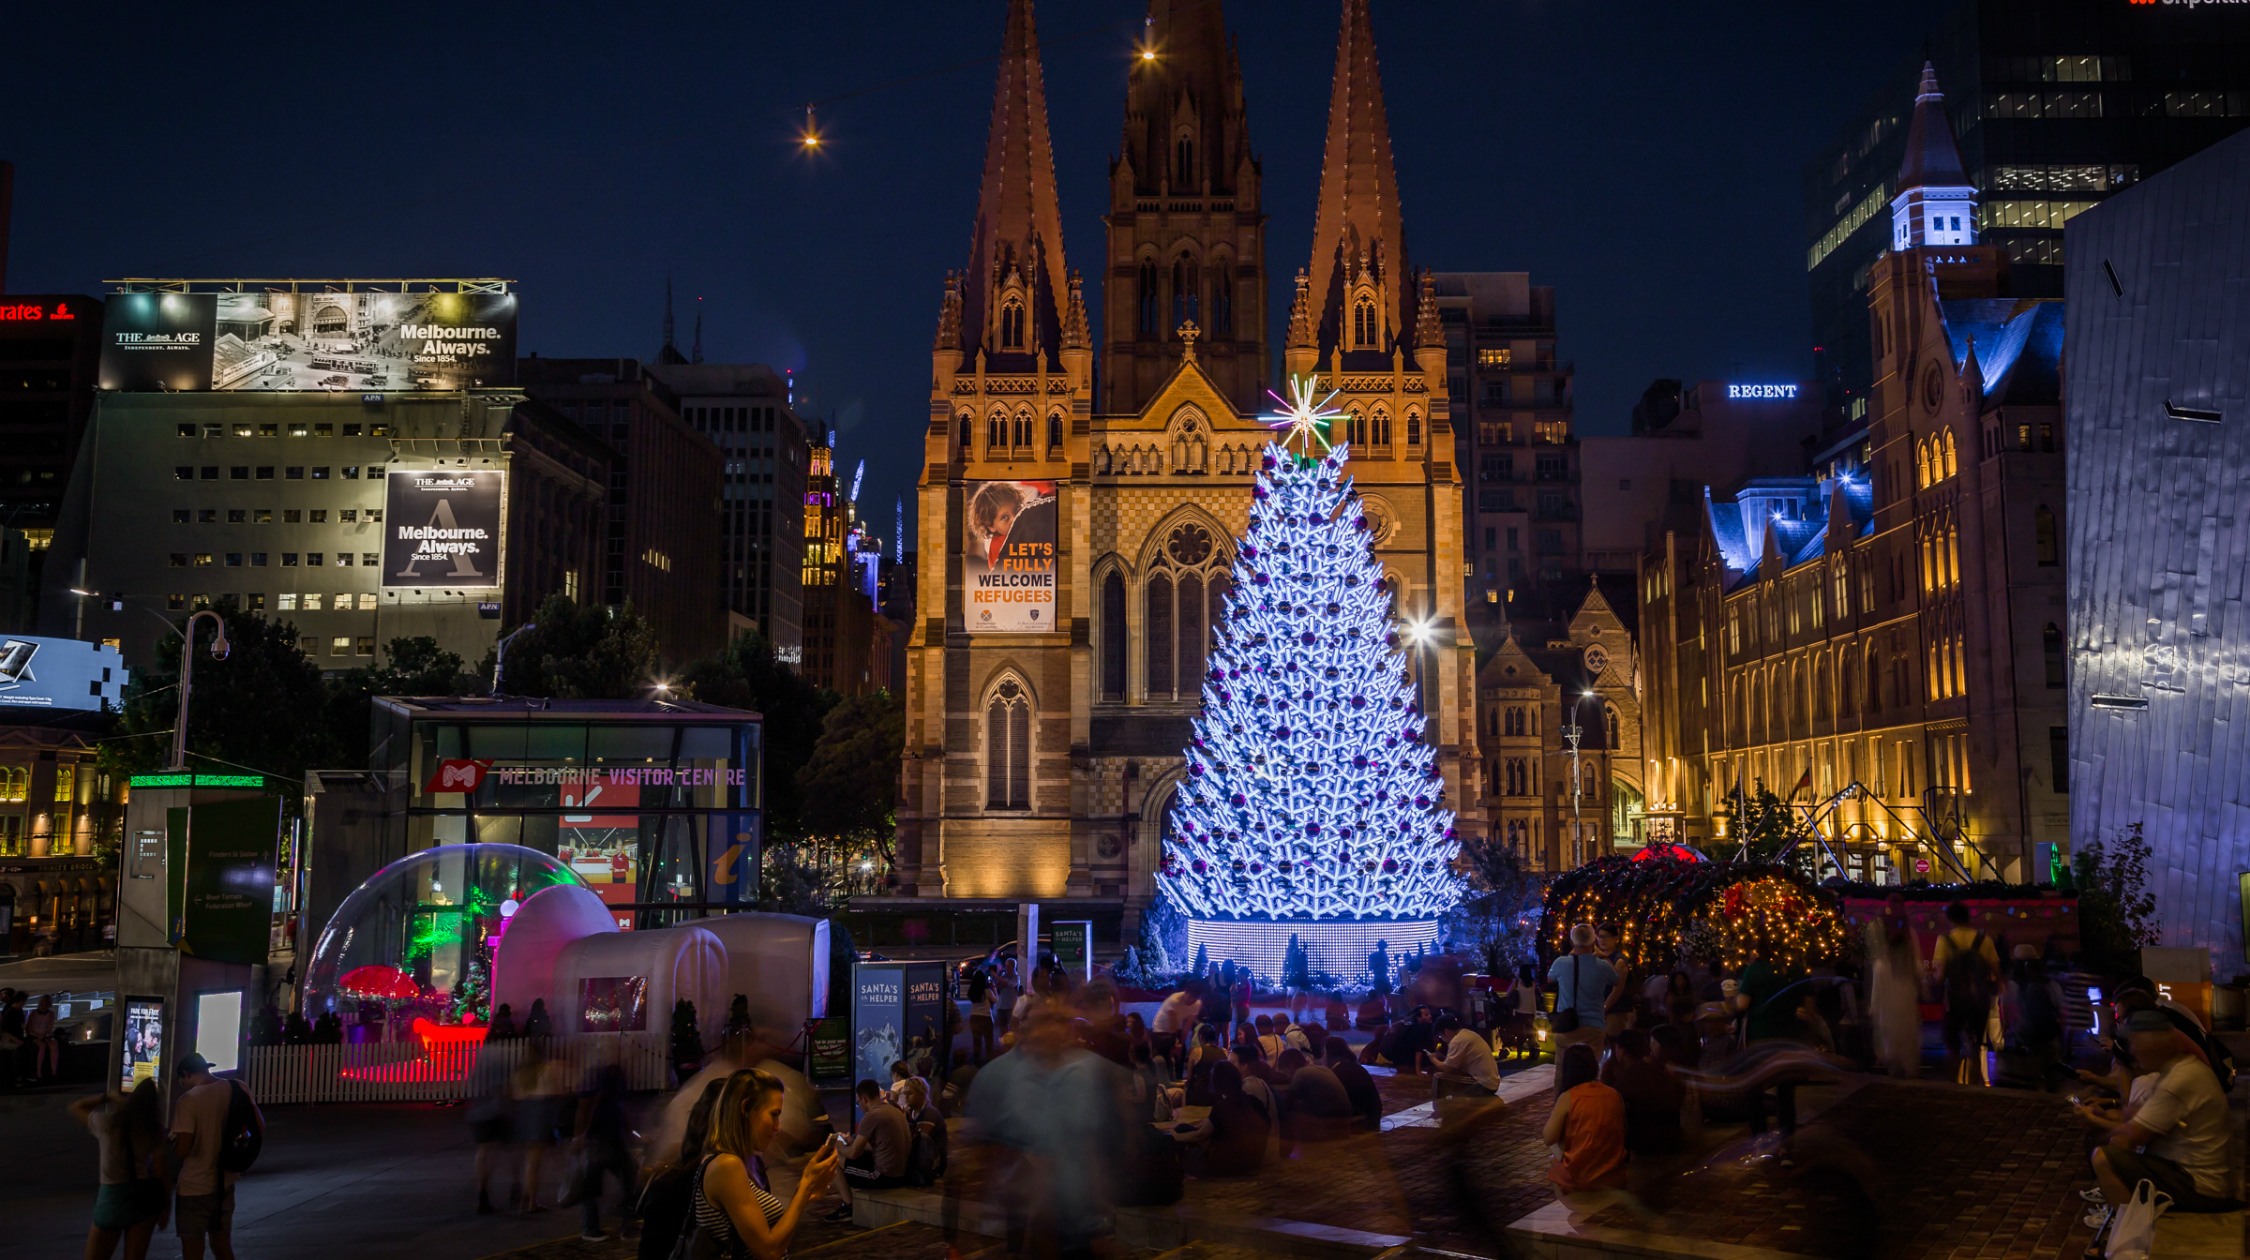 The Best Christmas Lights And Decorations In Melbourne